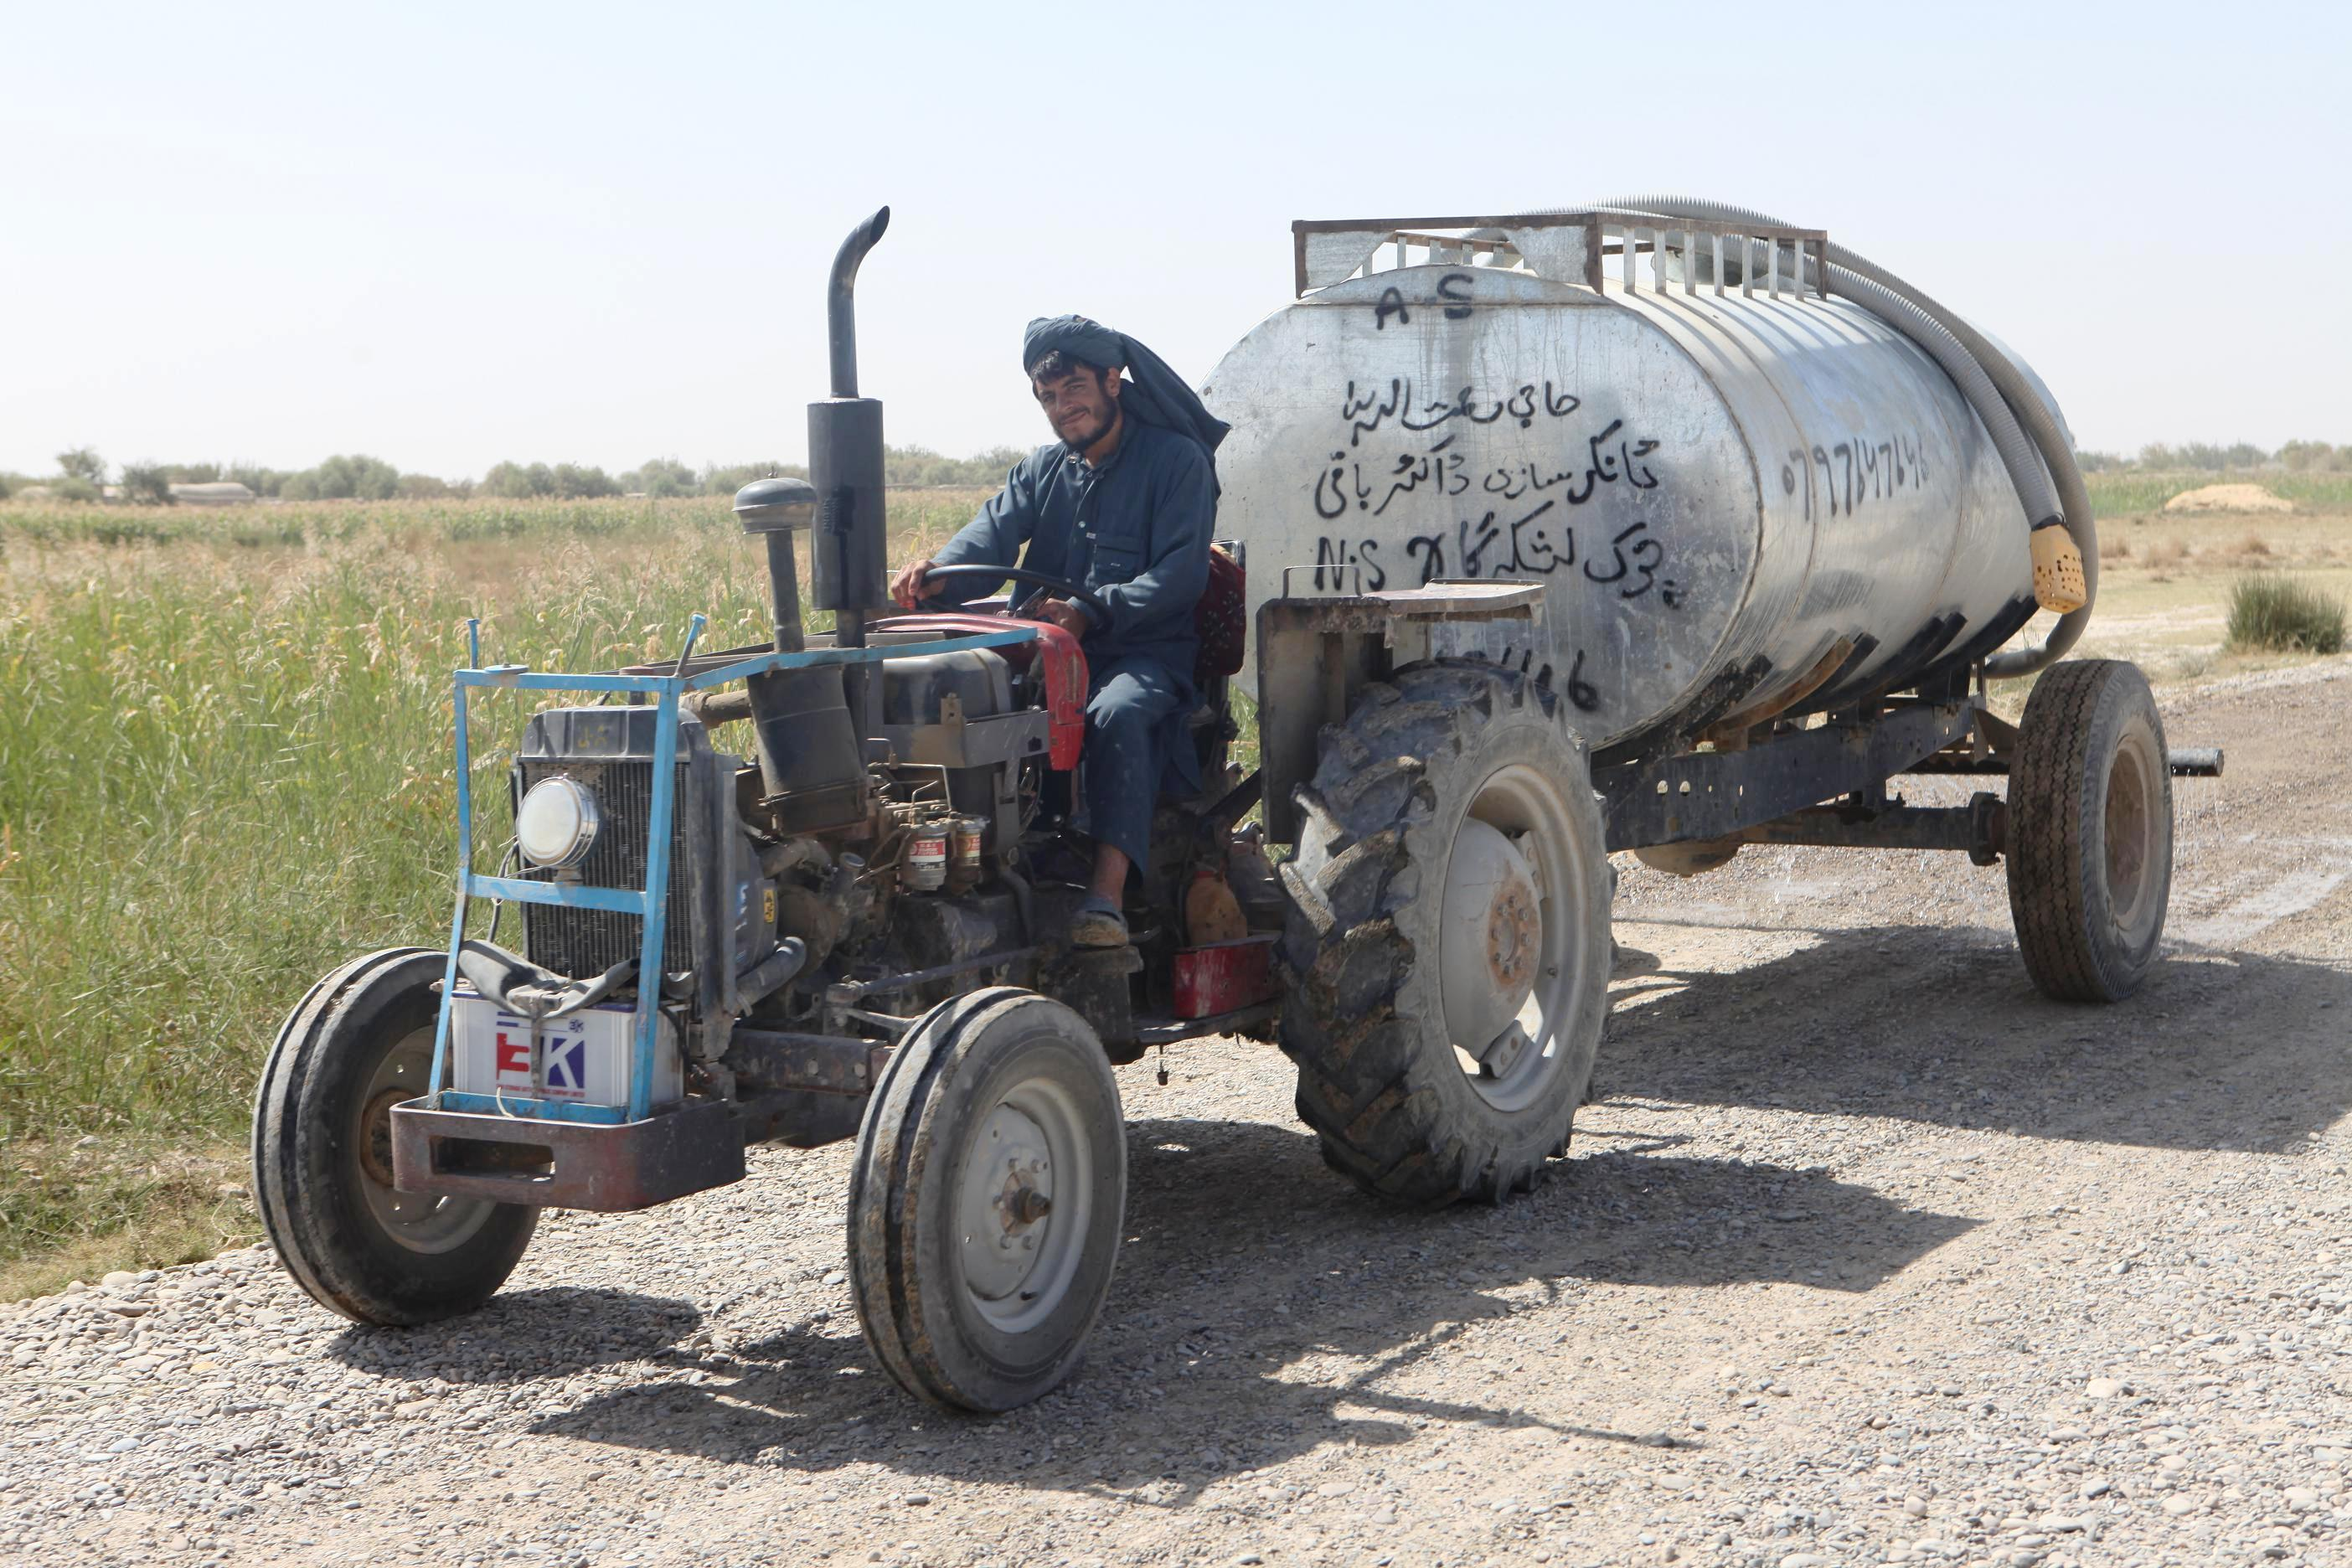 Guy On Tractor : File afghan man on his tractor g wikimedia commons